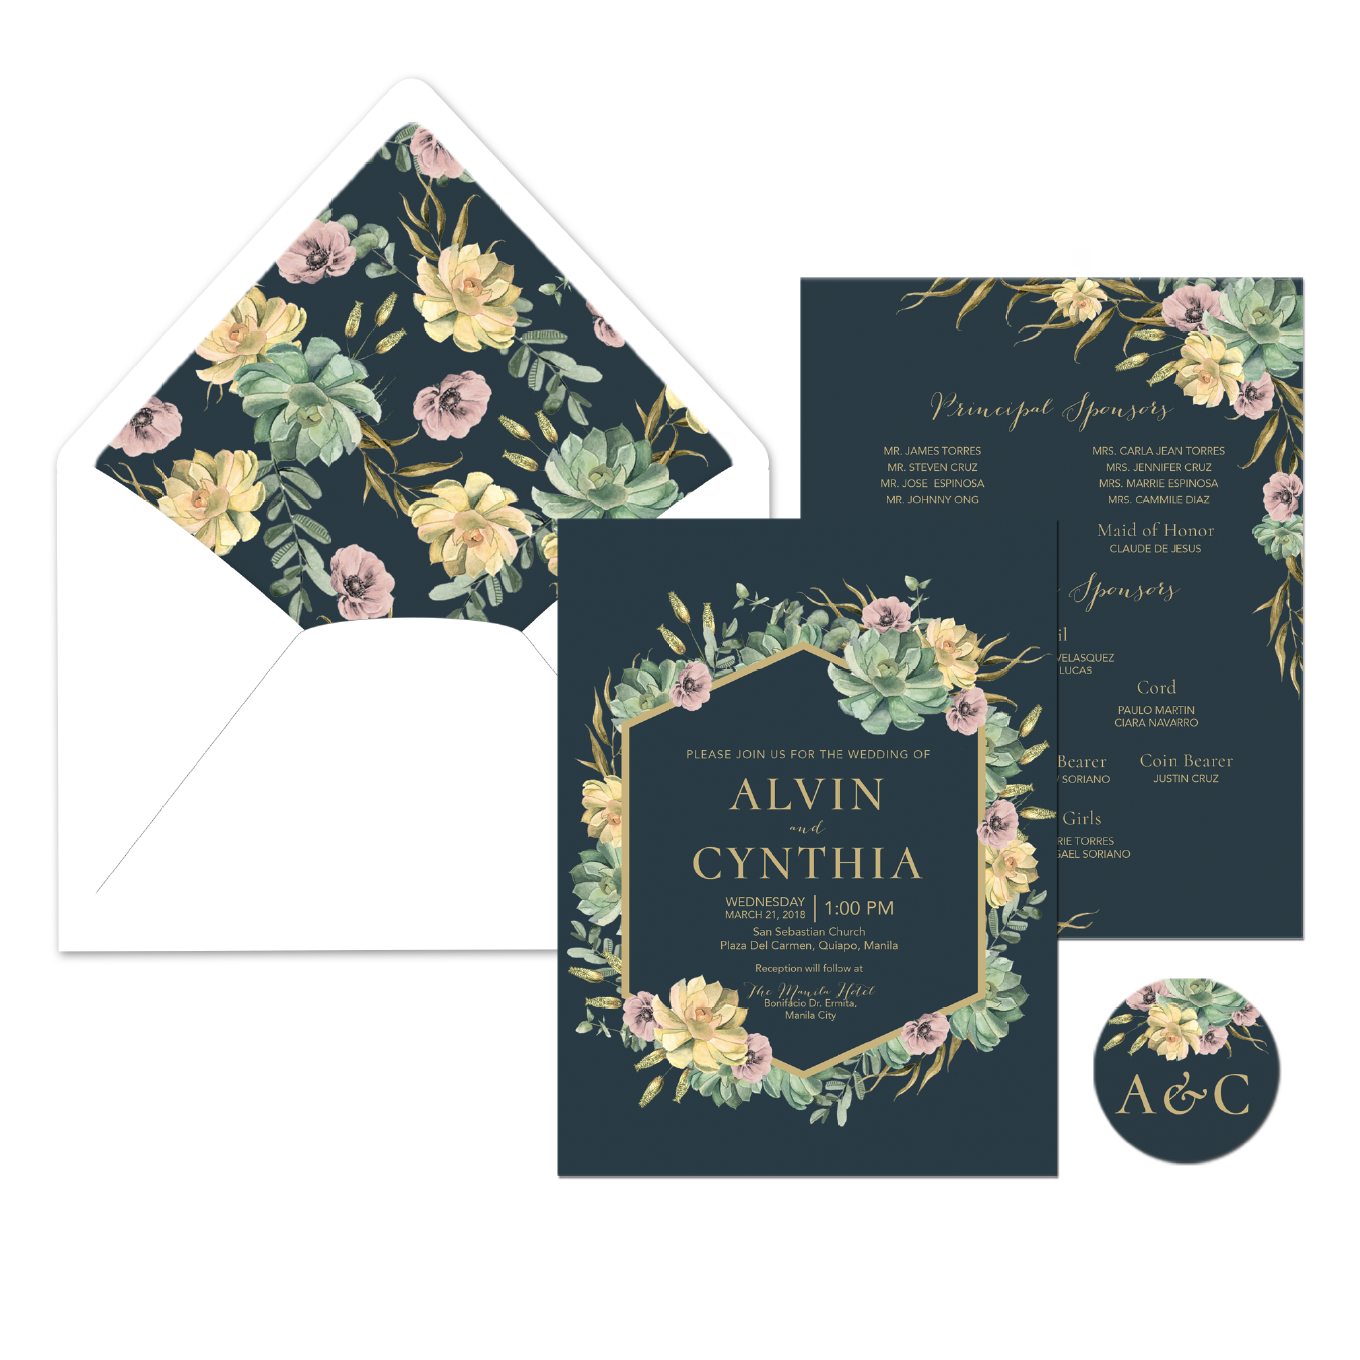 Crysanthemum Wedding Invitation